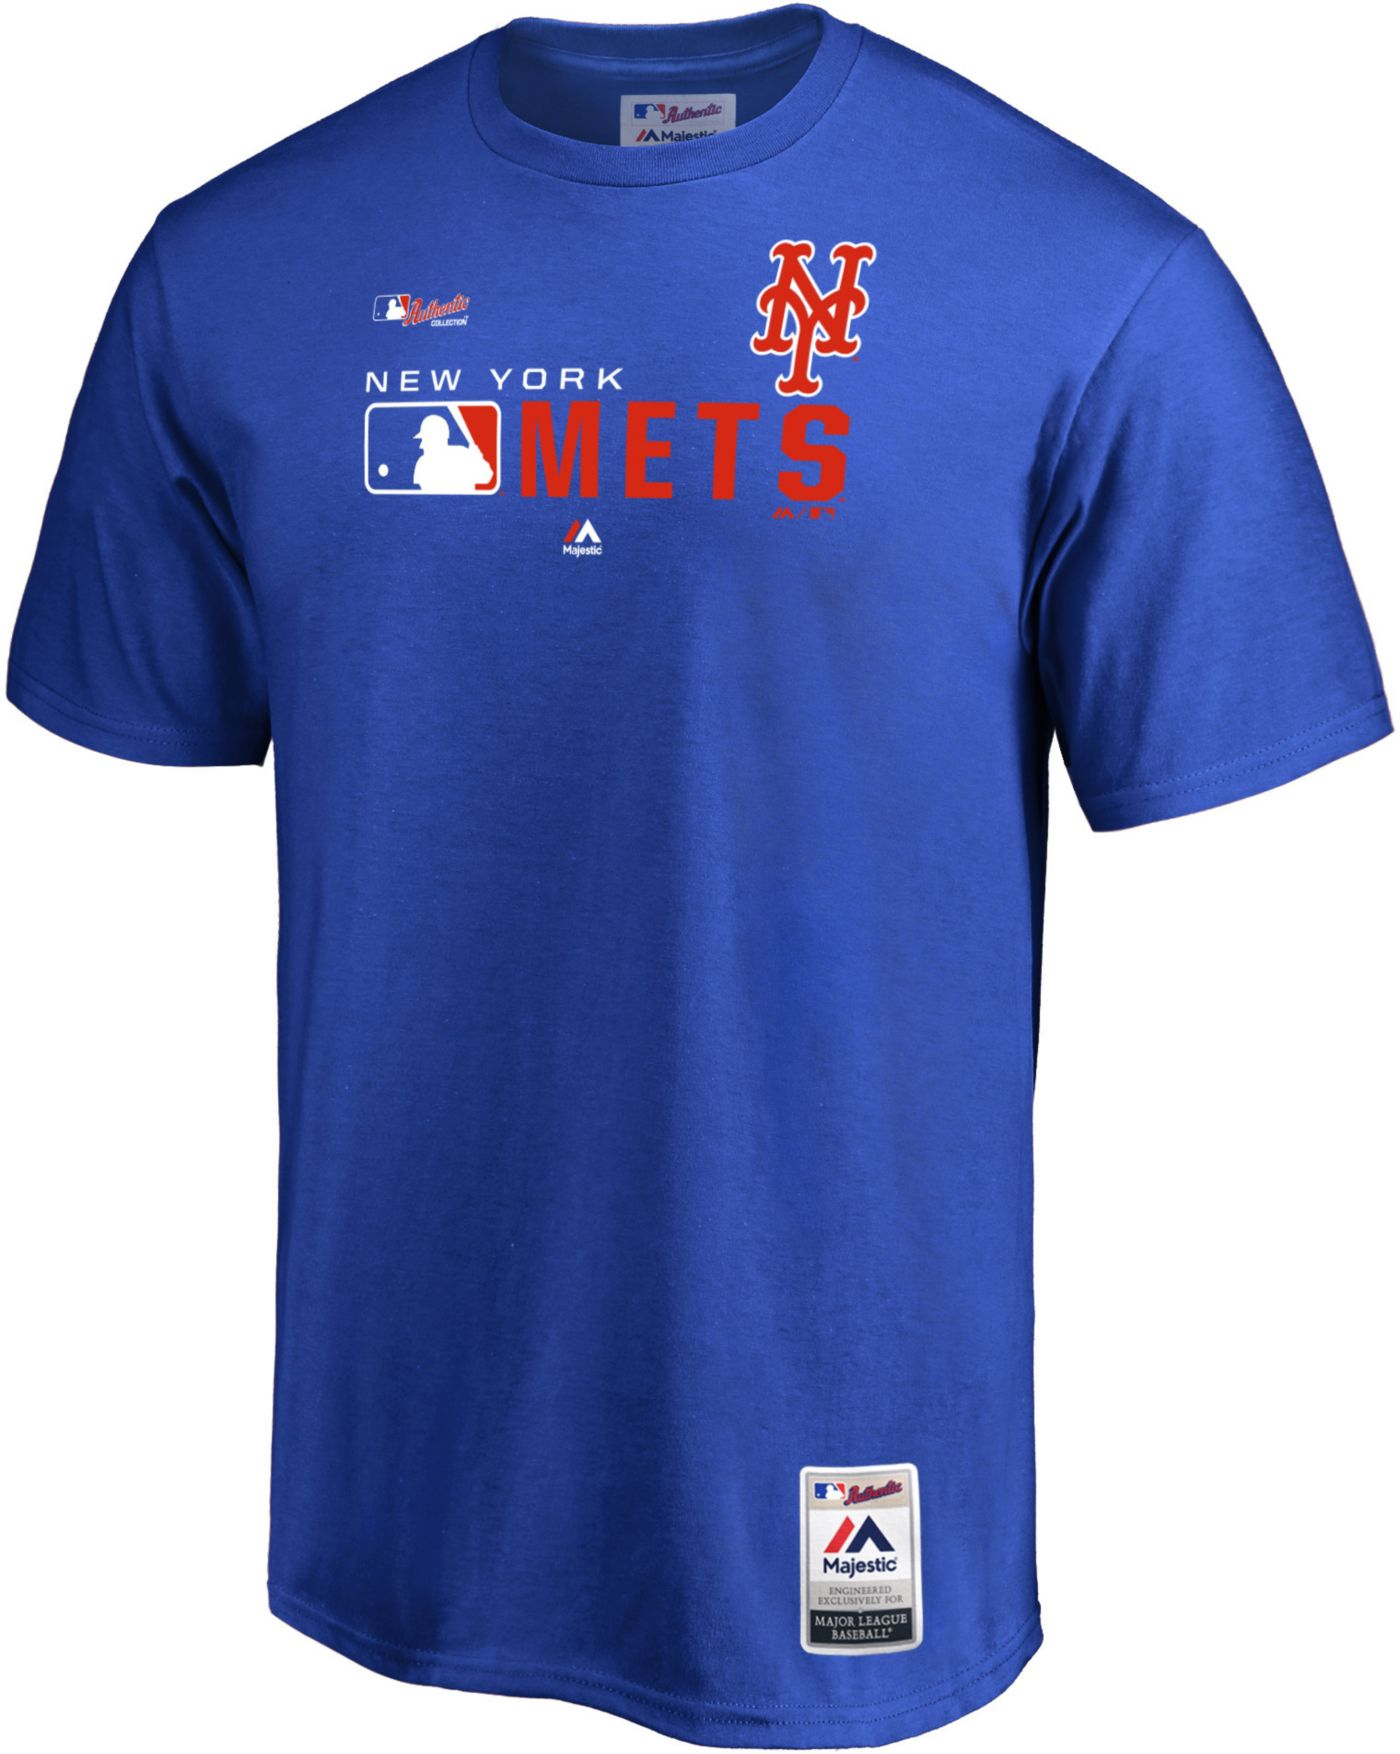 Majestic Men's New York Mets Authentic Collection T-Shirt